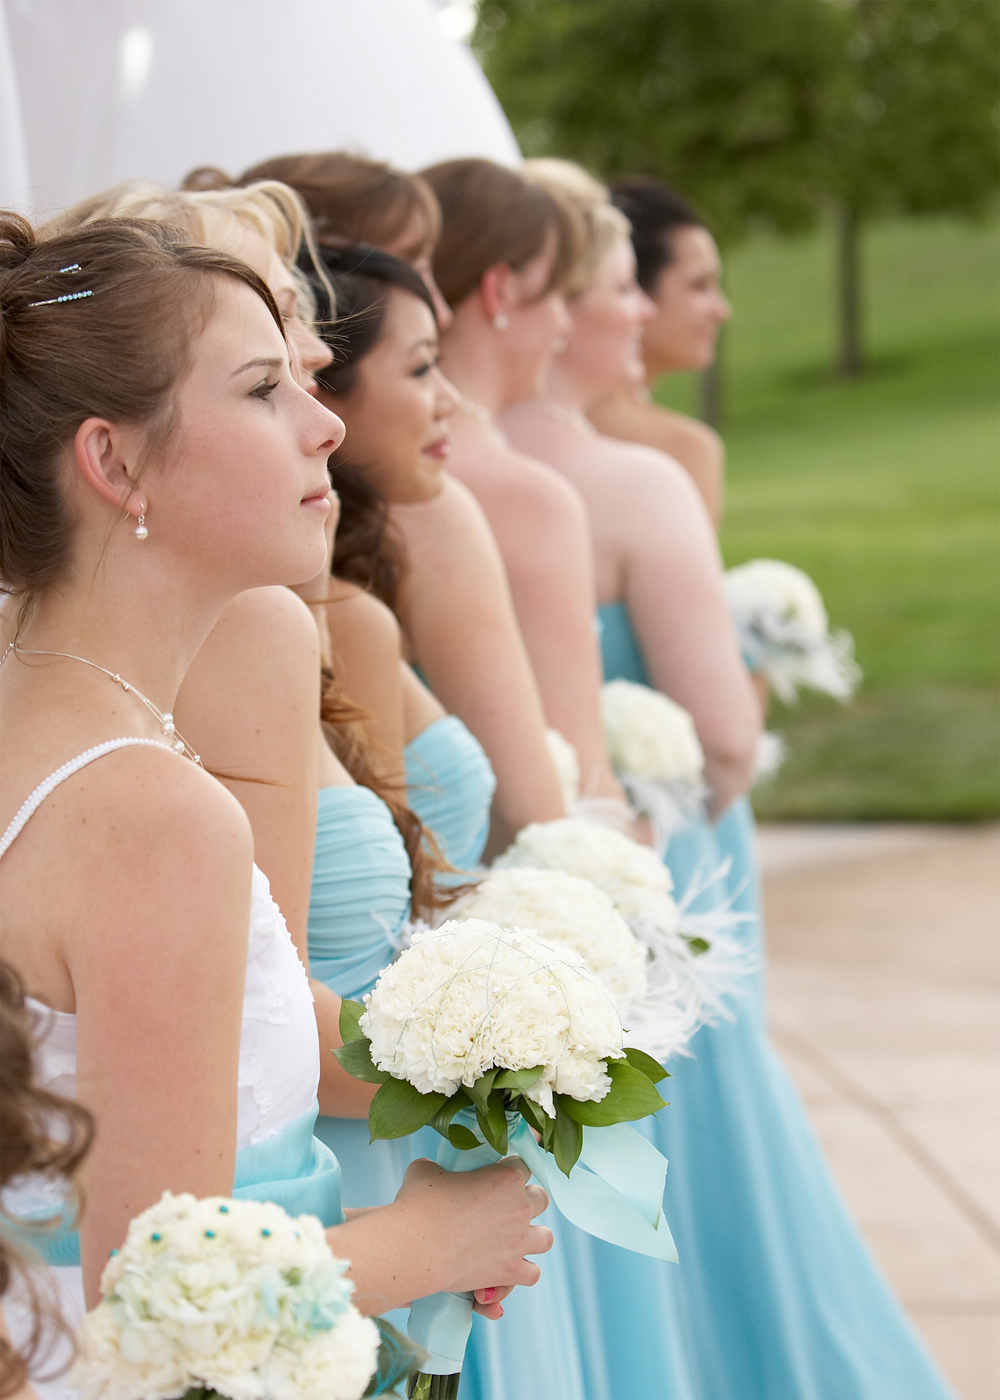 Wedding photo of bride maids before retouching